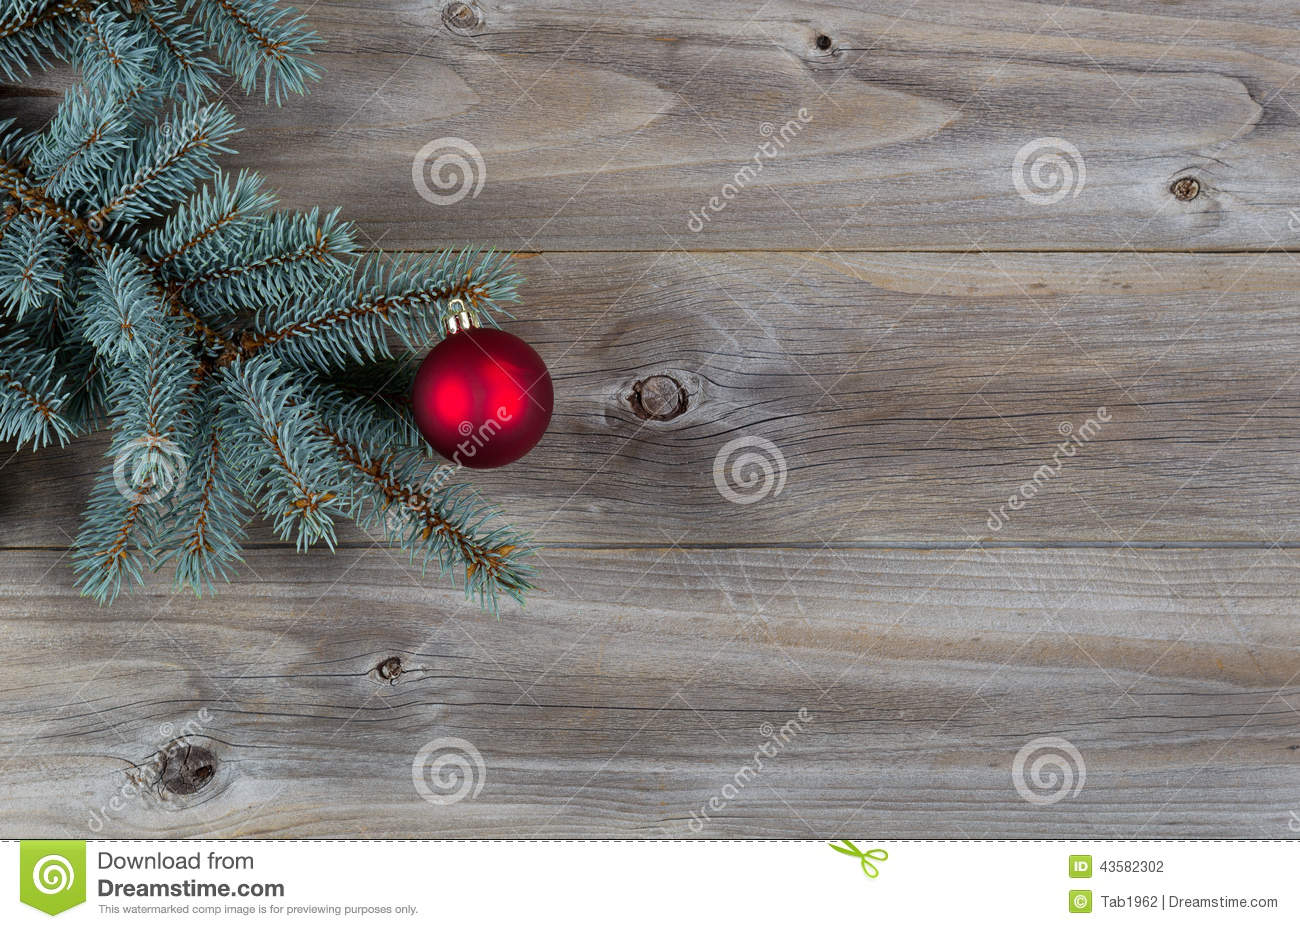 Red ball christmas ornament on pine tree branch with